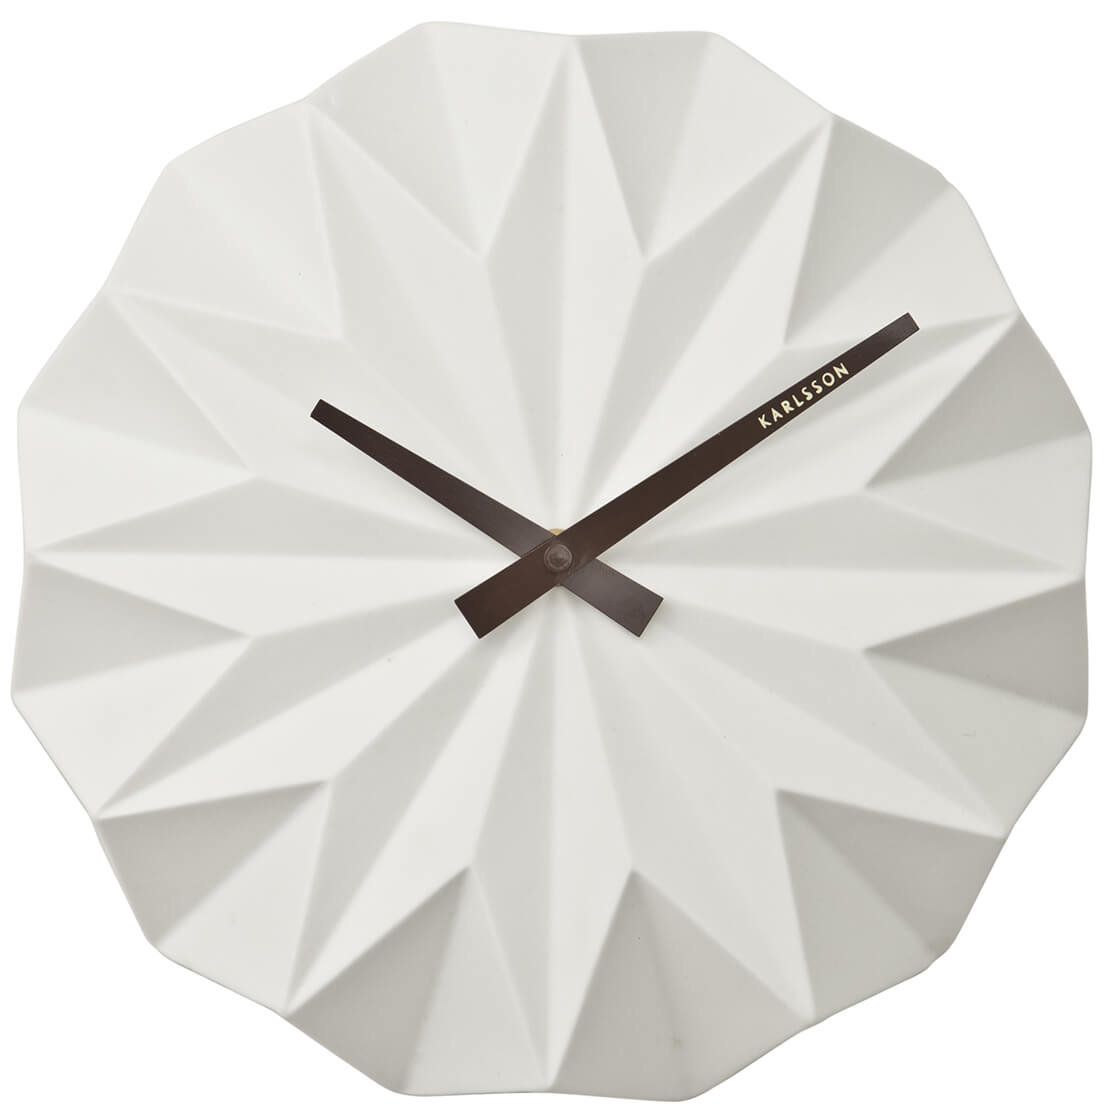 Karlsson Origami Ceramic Wall Clock - Matt White